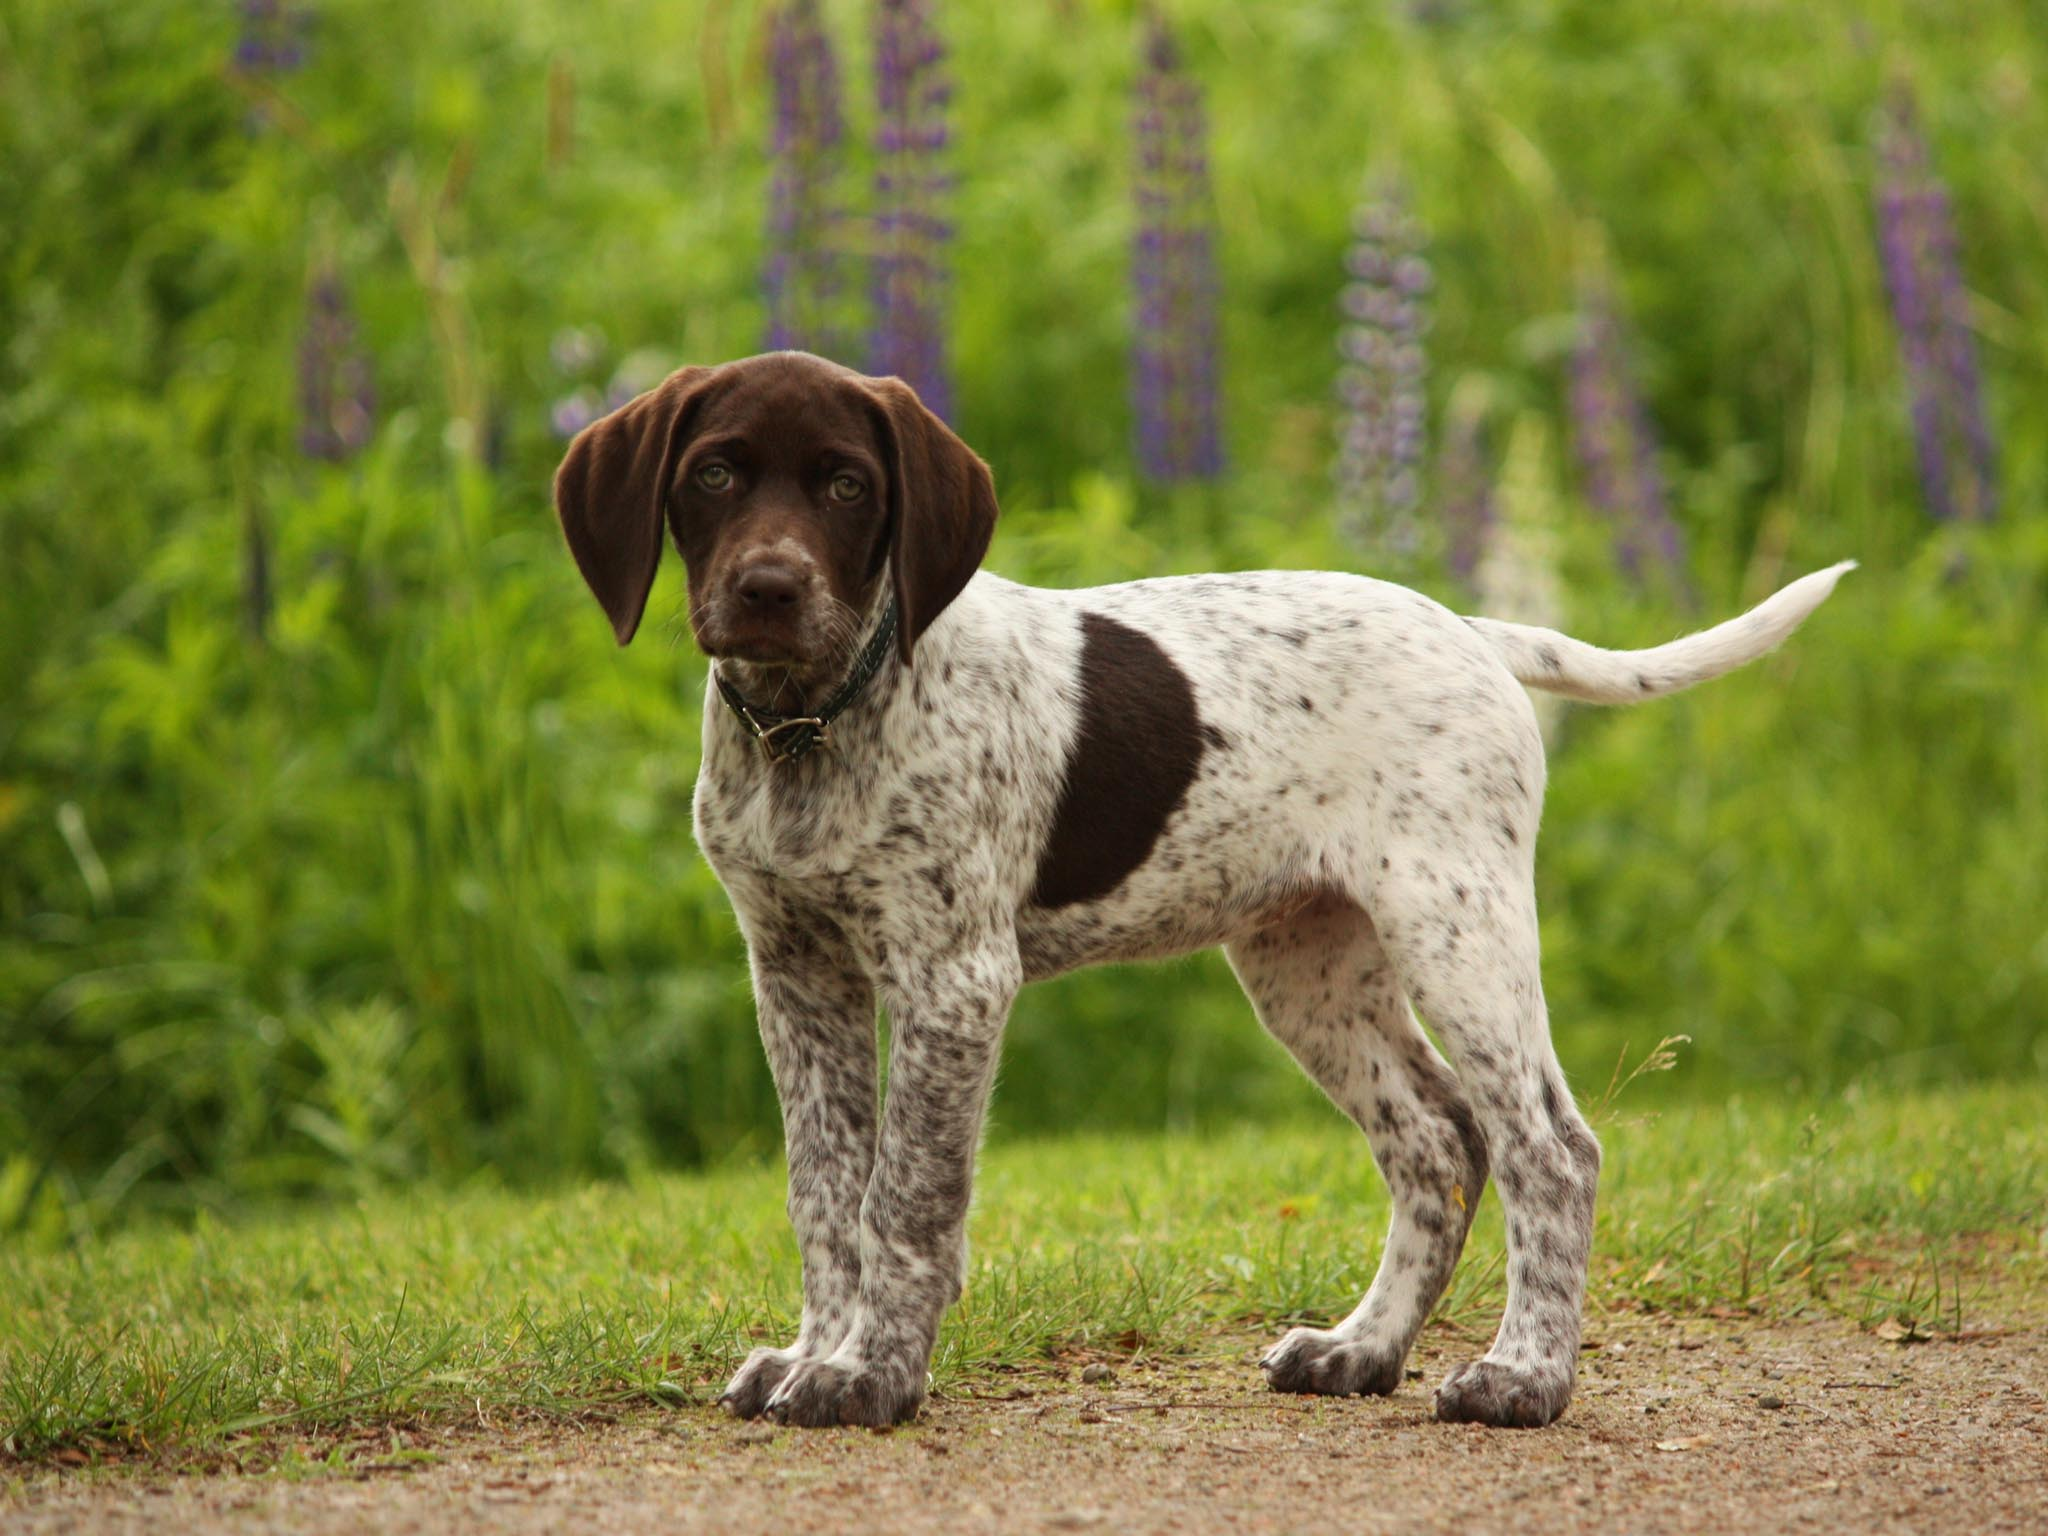 German Shorthaired Pointer Puppies 32183 1600x1200 px